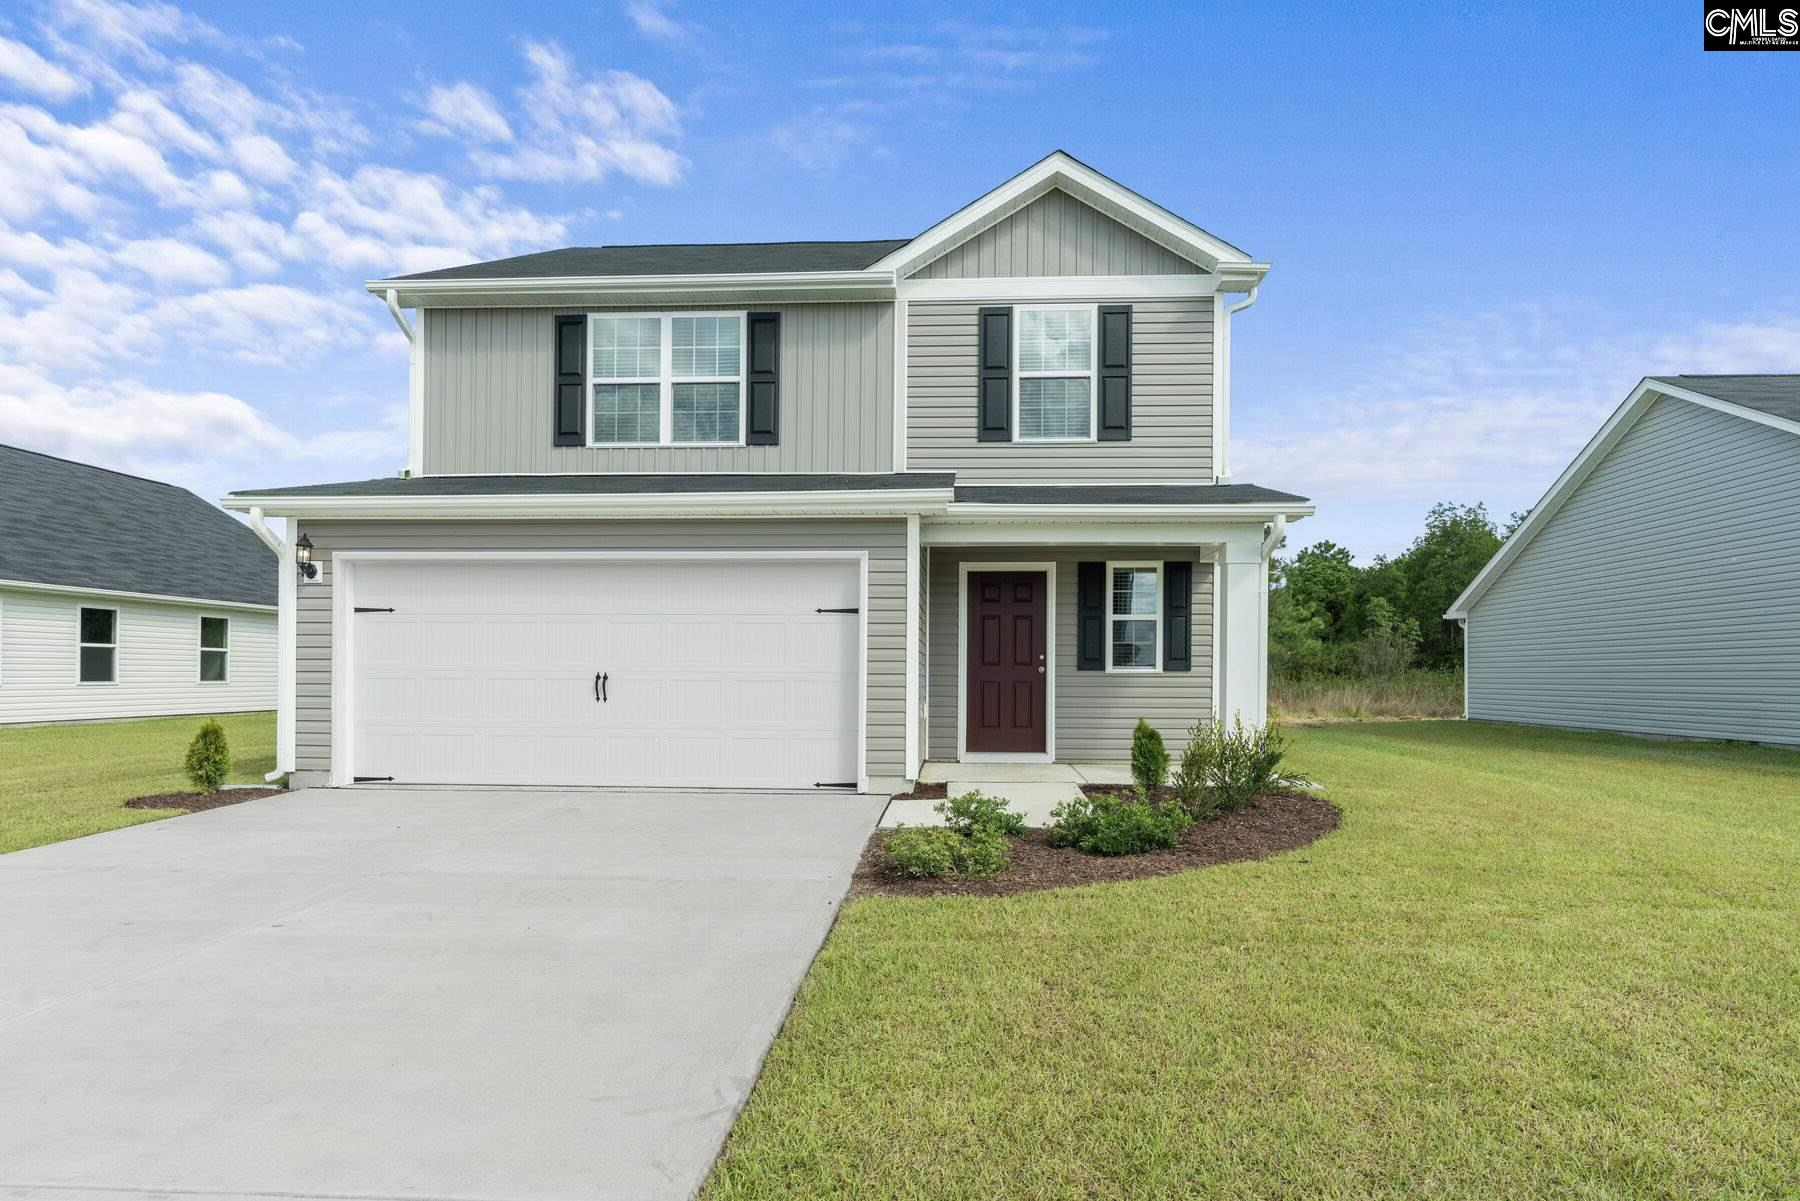 247 Common Reed Gilbert, SC 29054